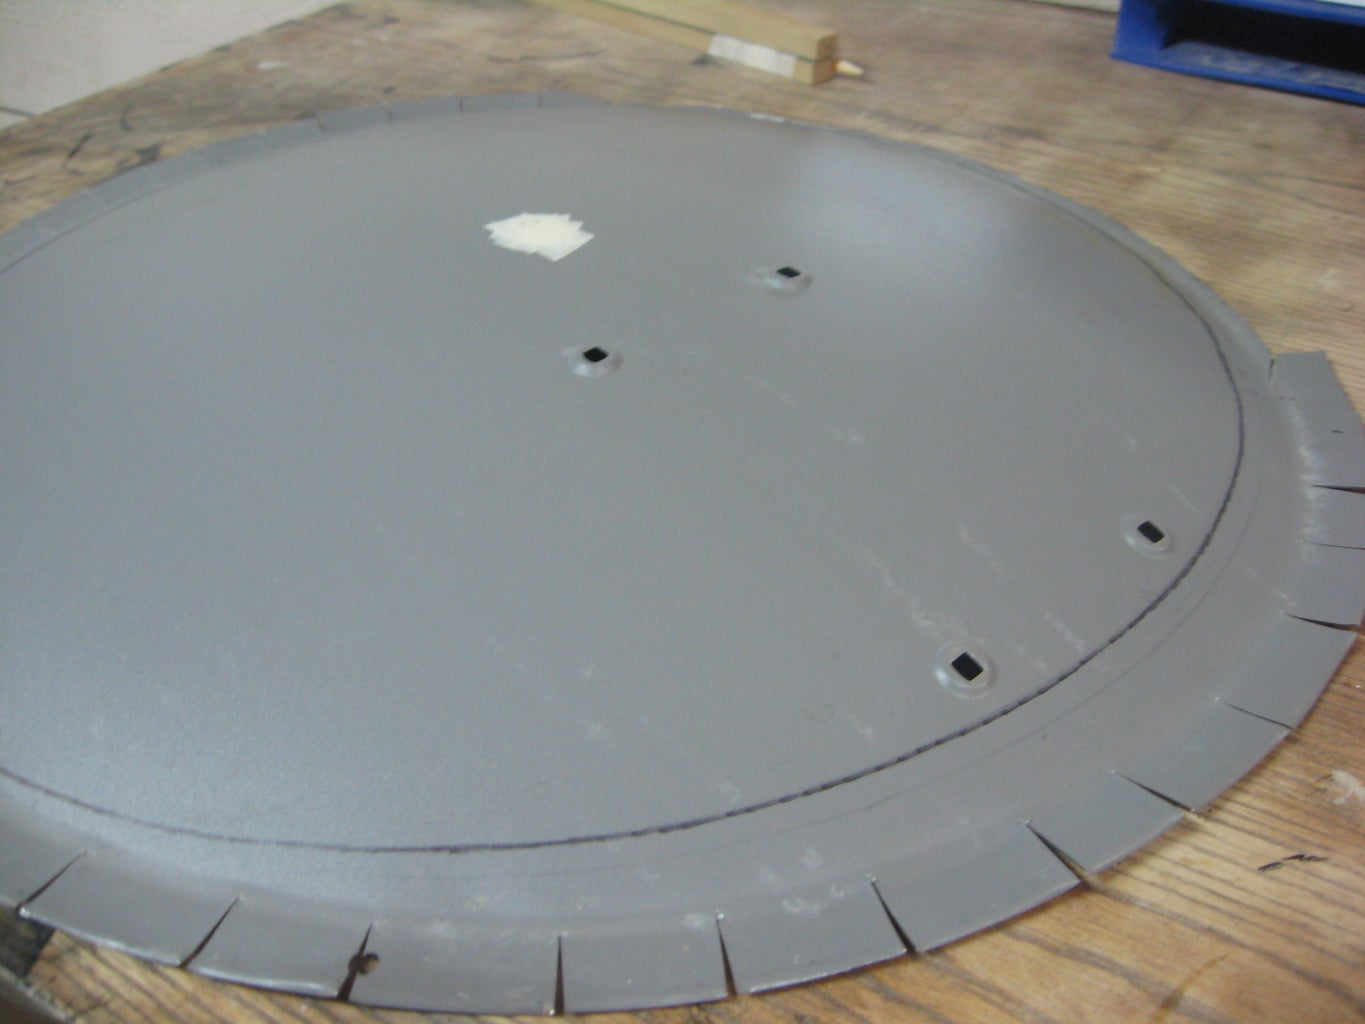 Cut Out Circle Shape From Dish